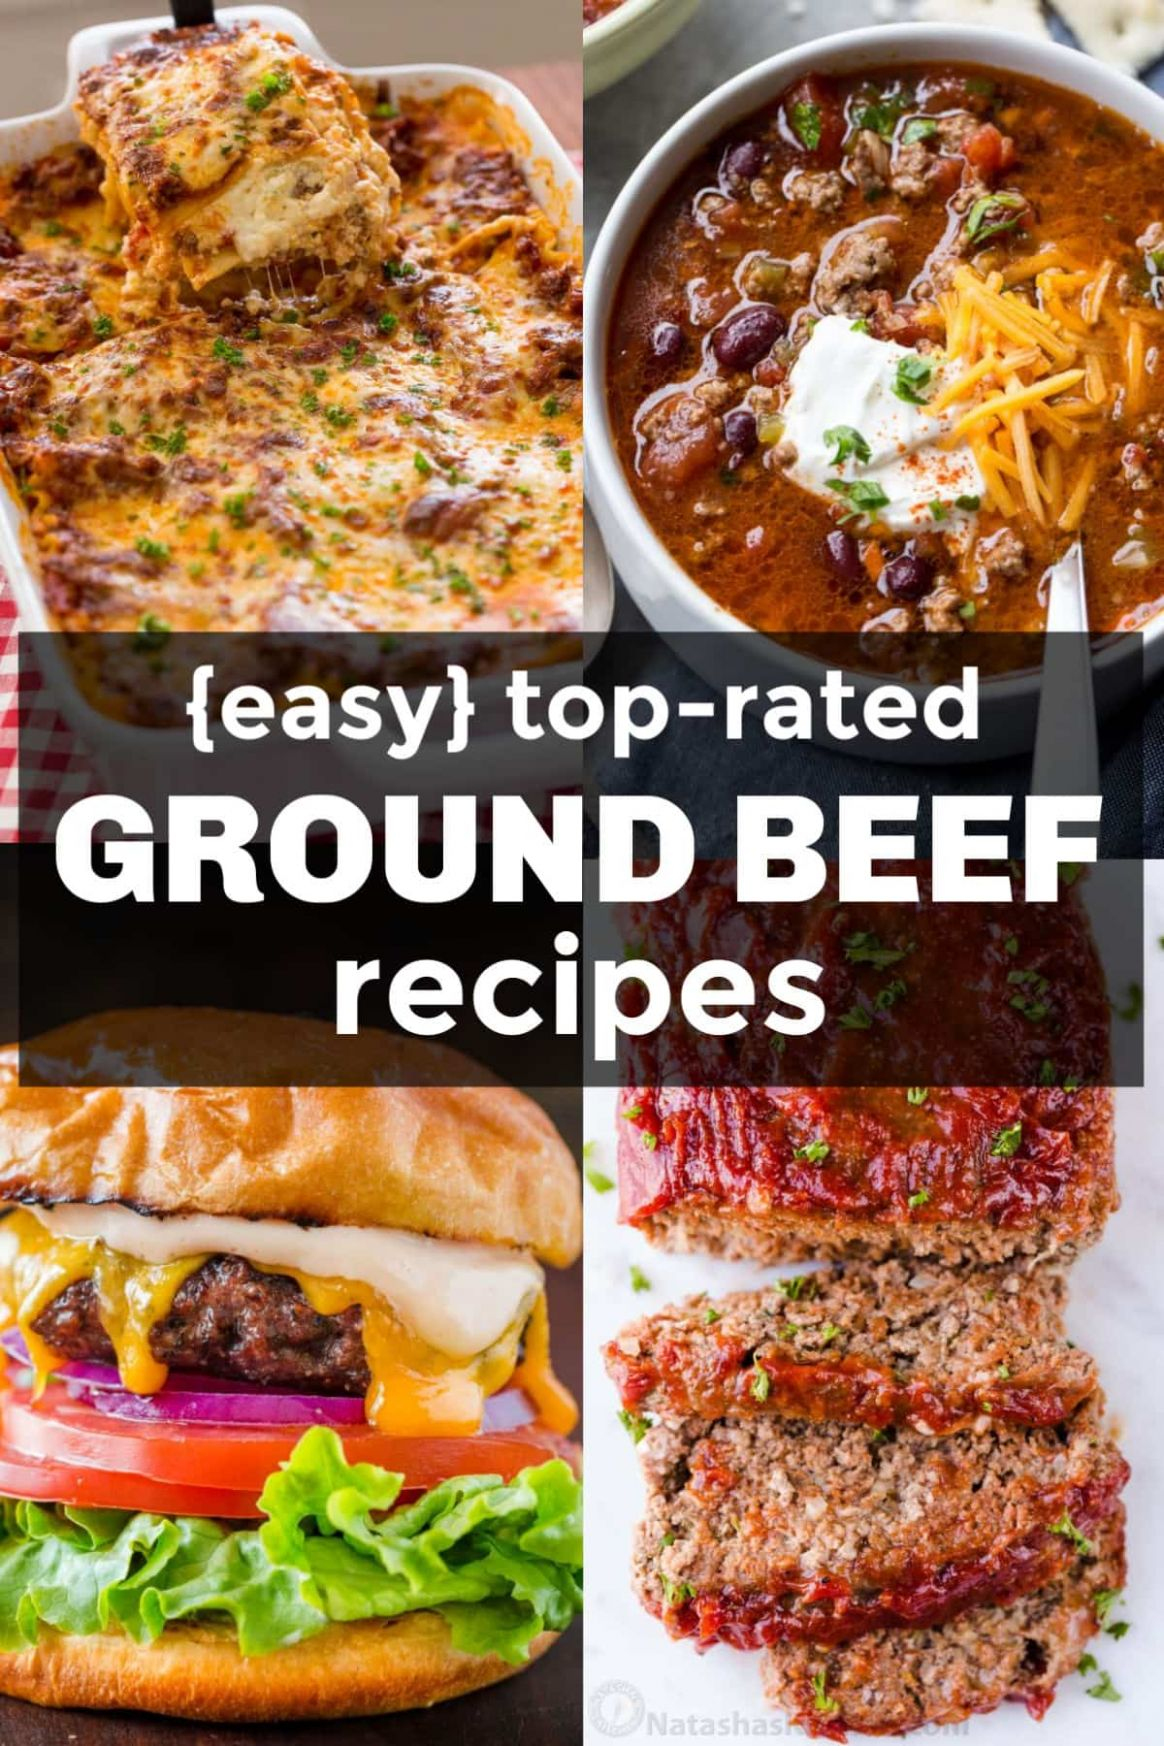 How to Cook Ground Beef for Ground Beef Recipes - Beef Recipes For Dinner